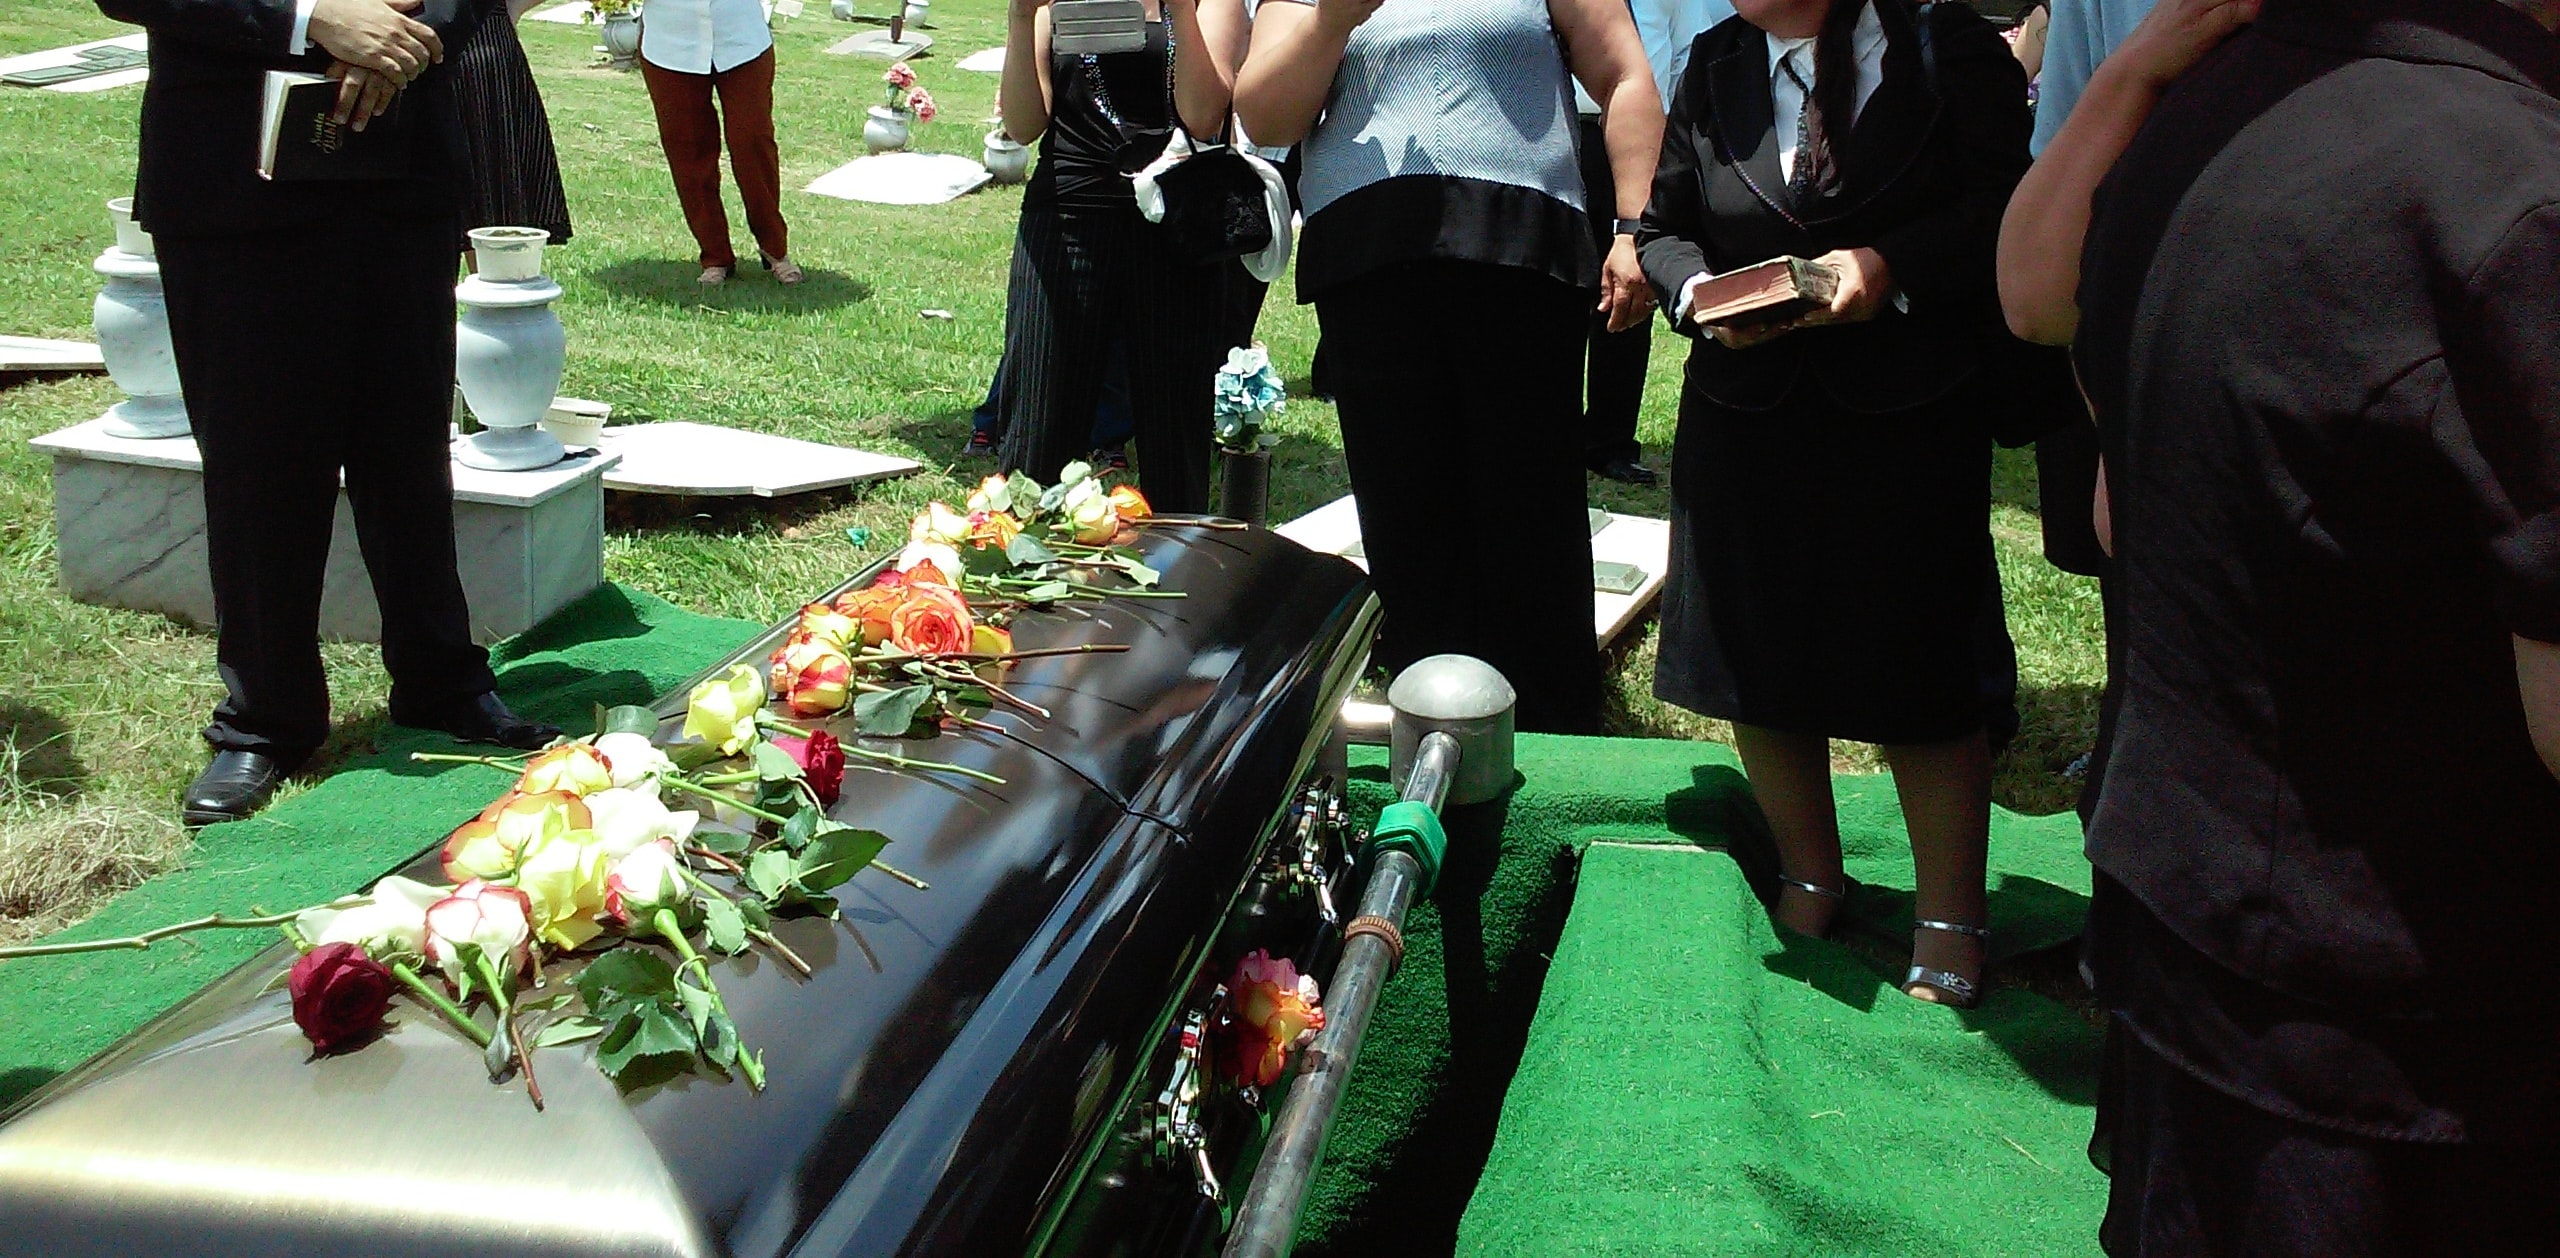 Steps to Take When a Loved One Dies